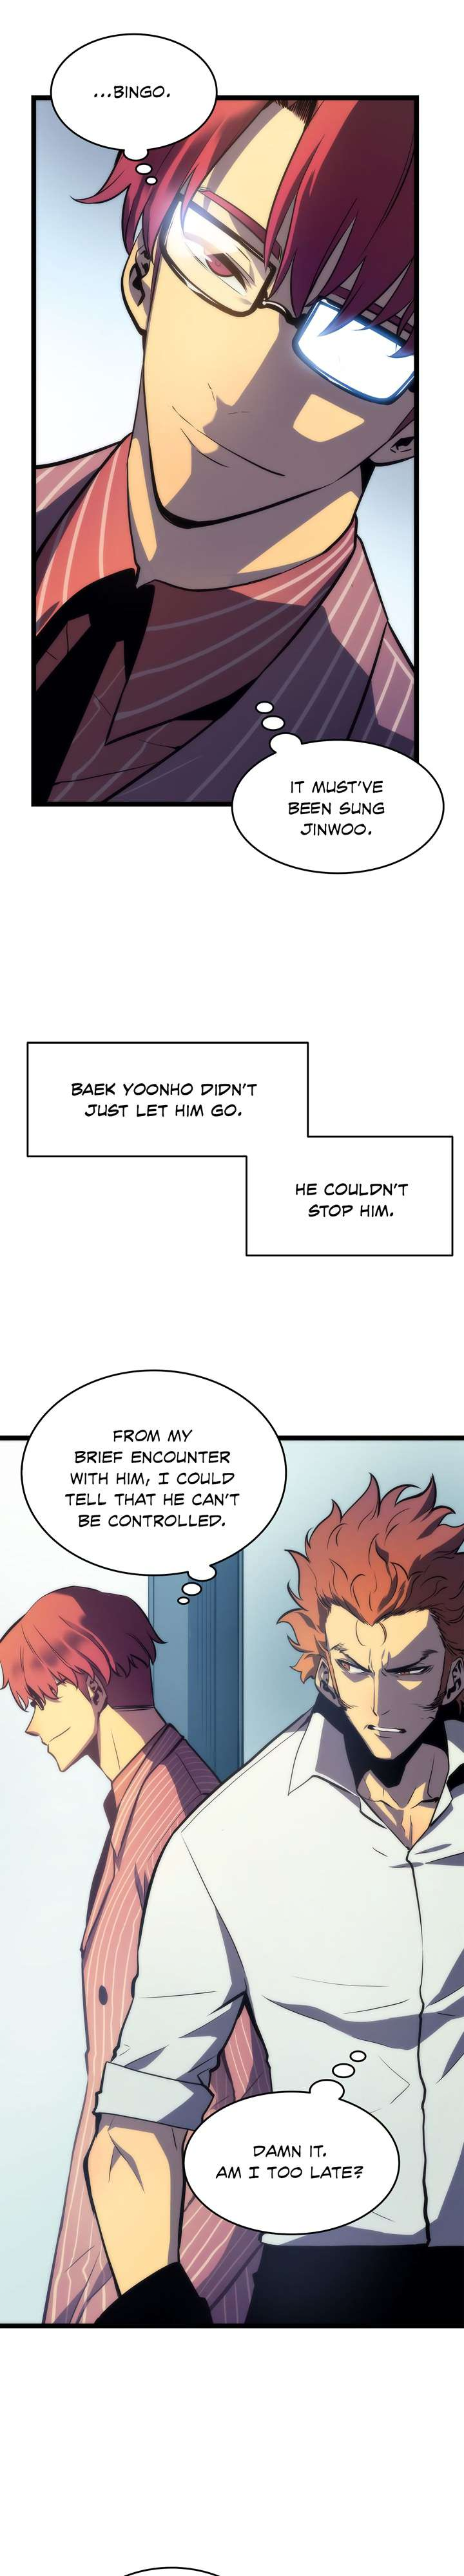 Solo Leveling Chapter 63 Page 12